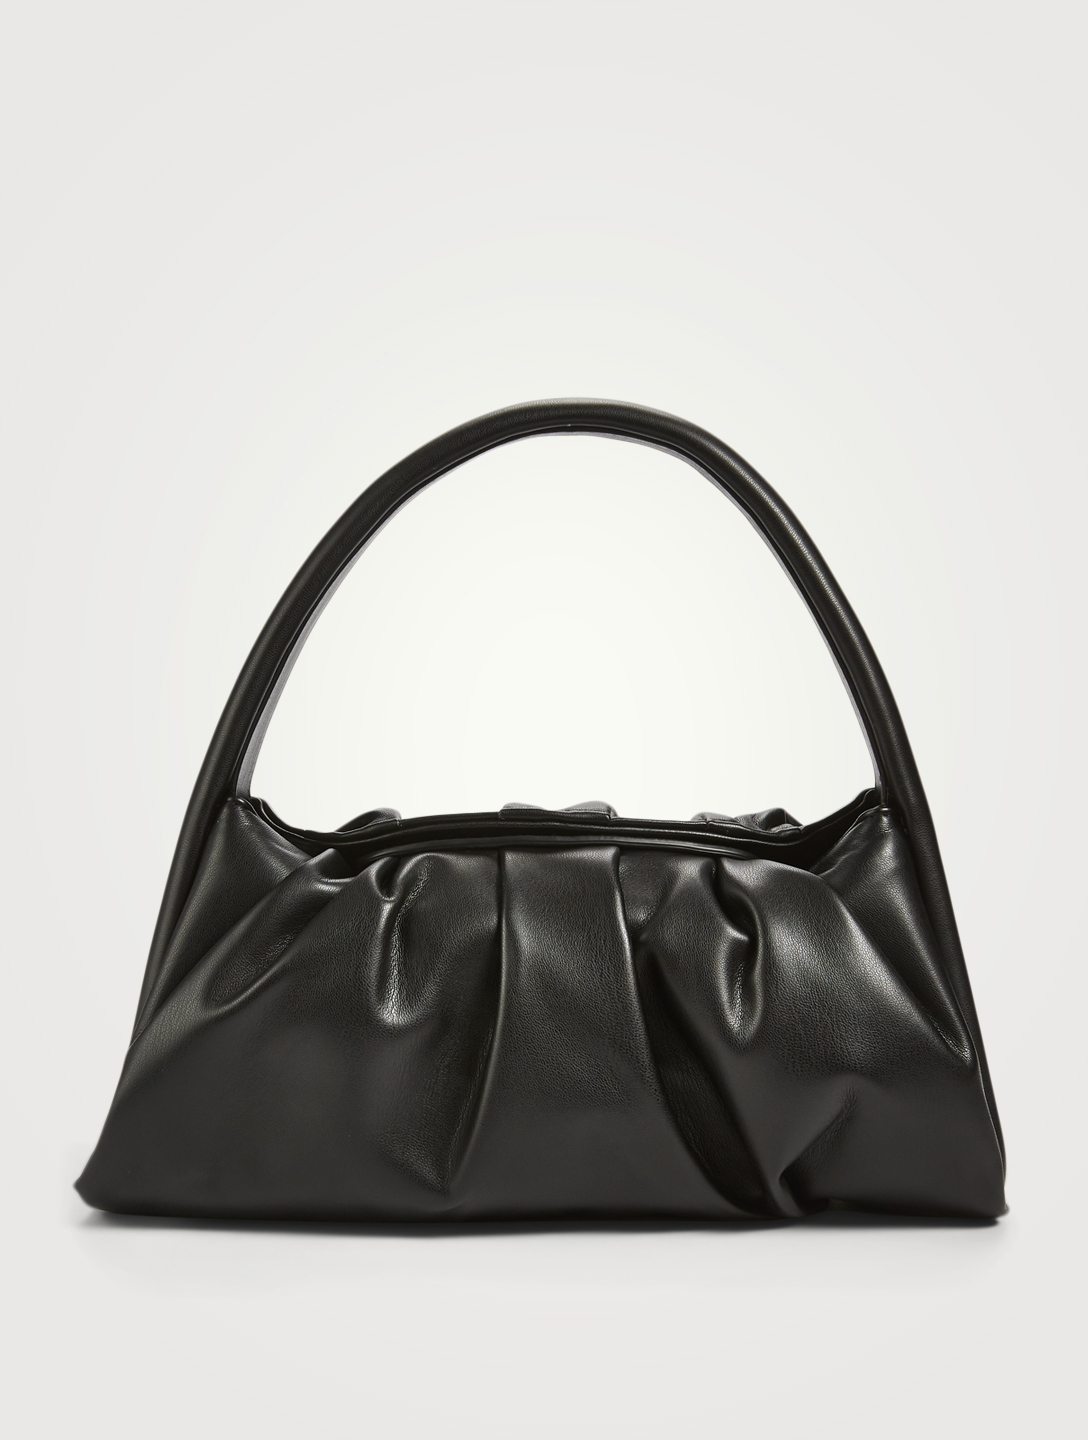 THEMOIRE Hera Basic Eco Leather Bag Women's Black